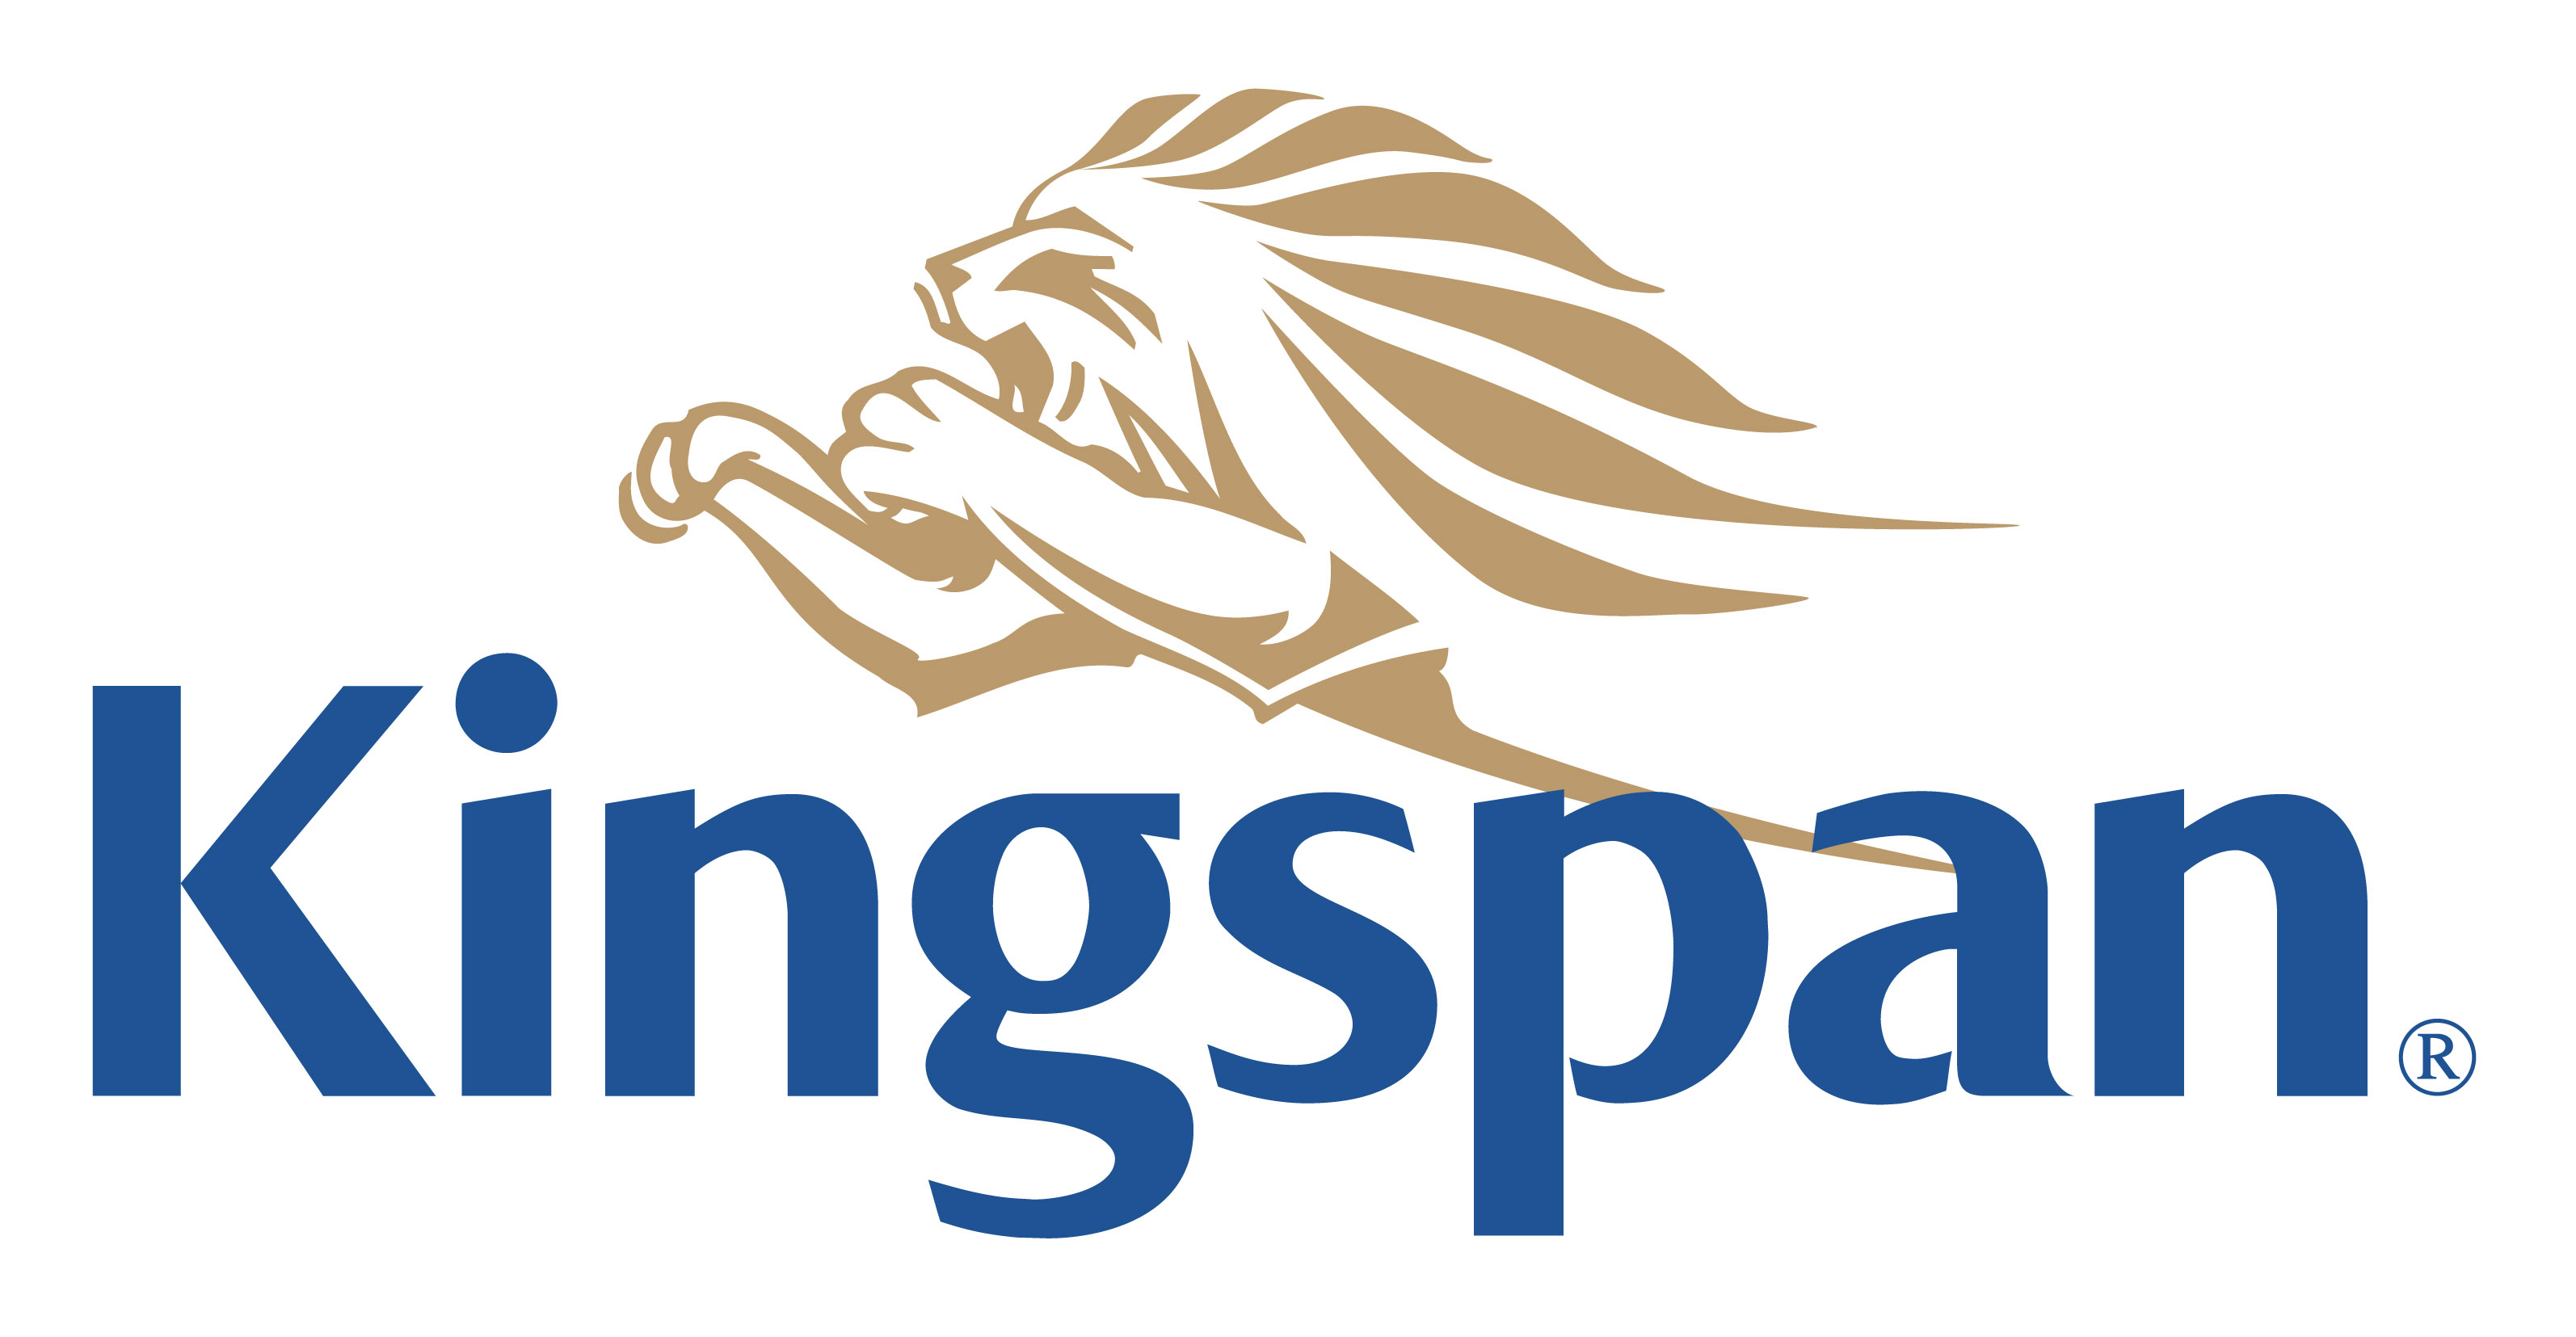 Kingspan insulation logo - 2015 UK Passivhaus Awards sponsor